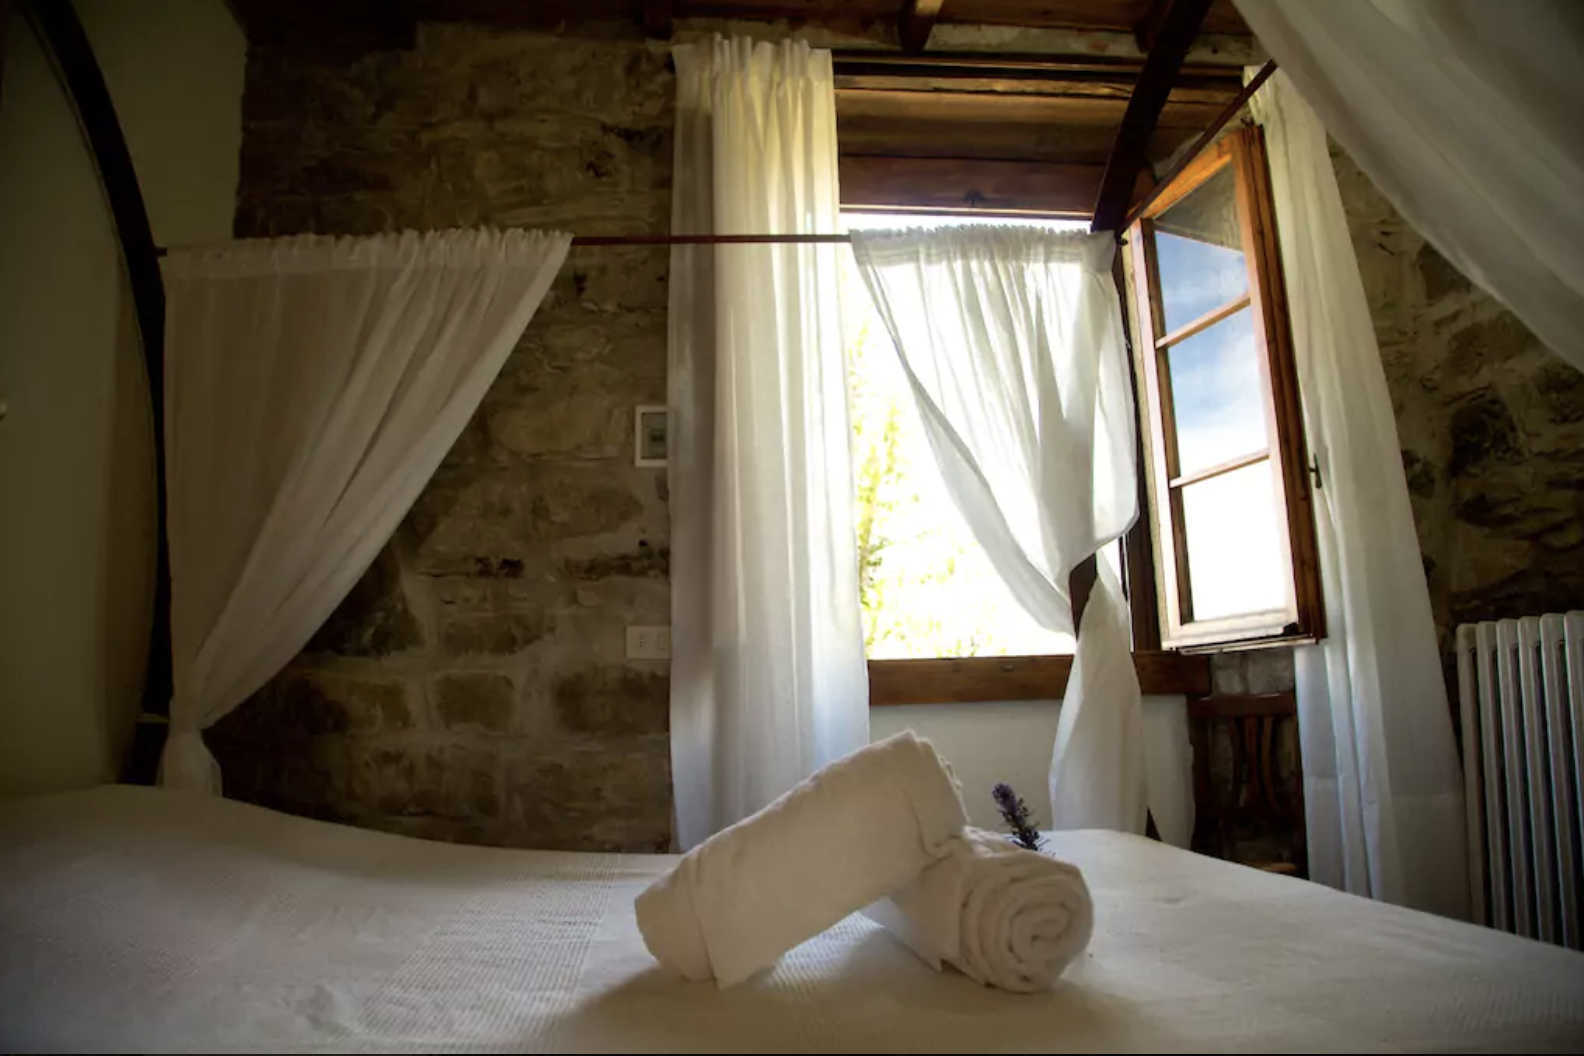 Fattoria 6 (2 bedroom, 2 bathroom apartment with small sleeping loft for up to 7 guests)